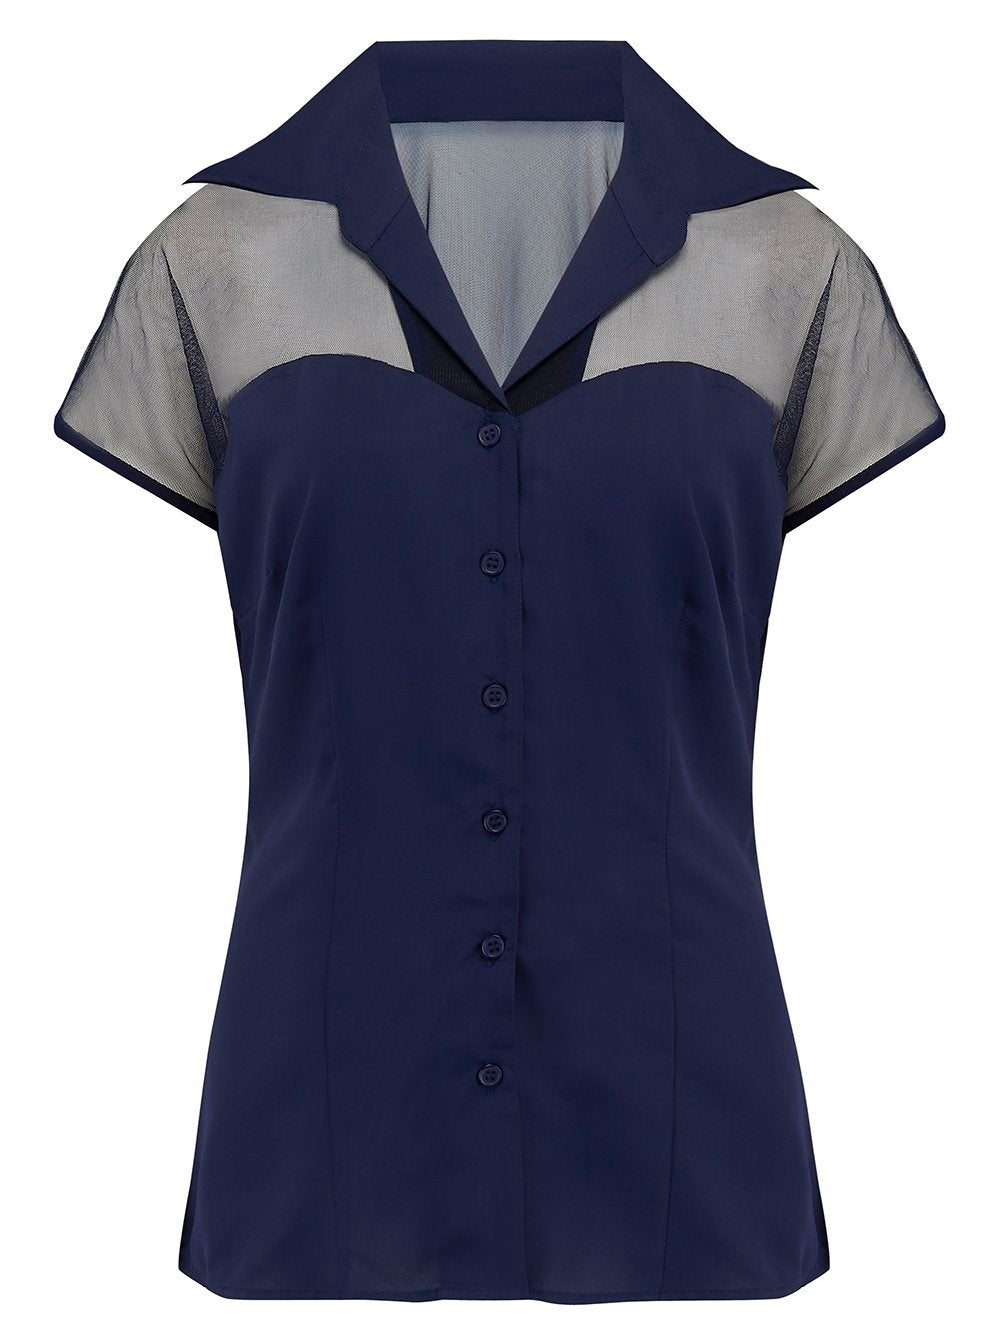 """Dalilah"" Blouse in Solid Navy Blue with Net Upper, Classic Vintage 1950s Inspired Style"